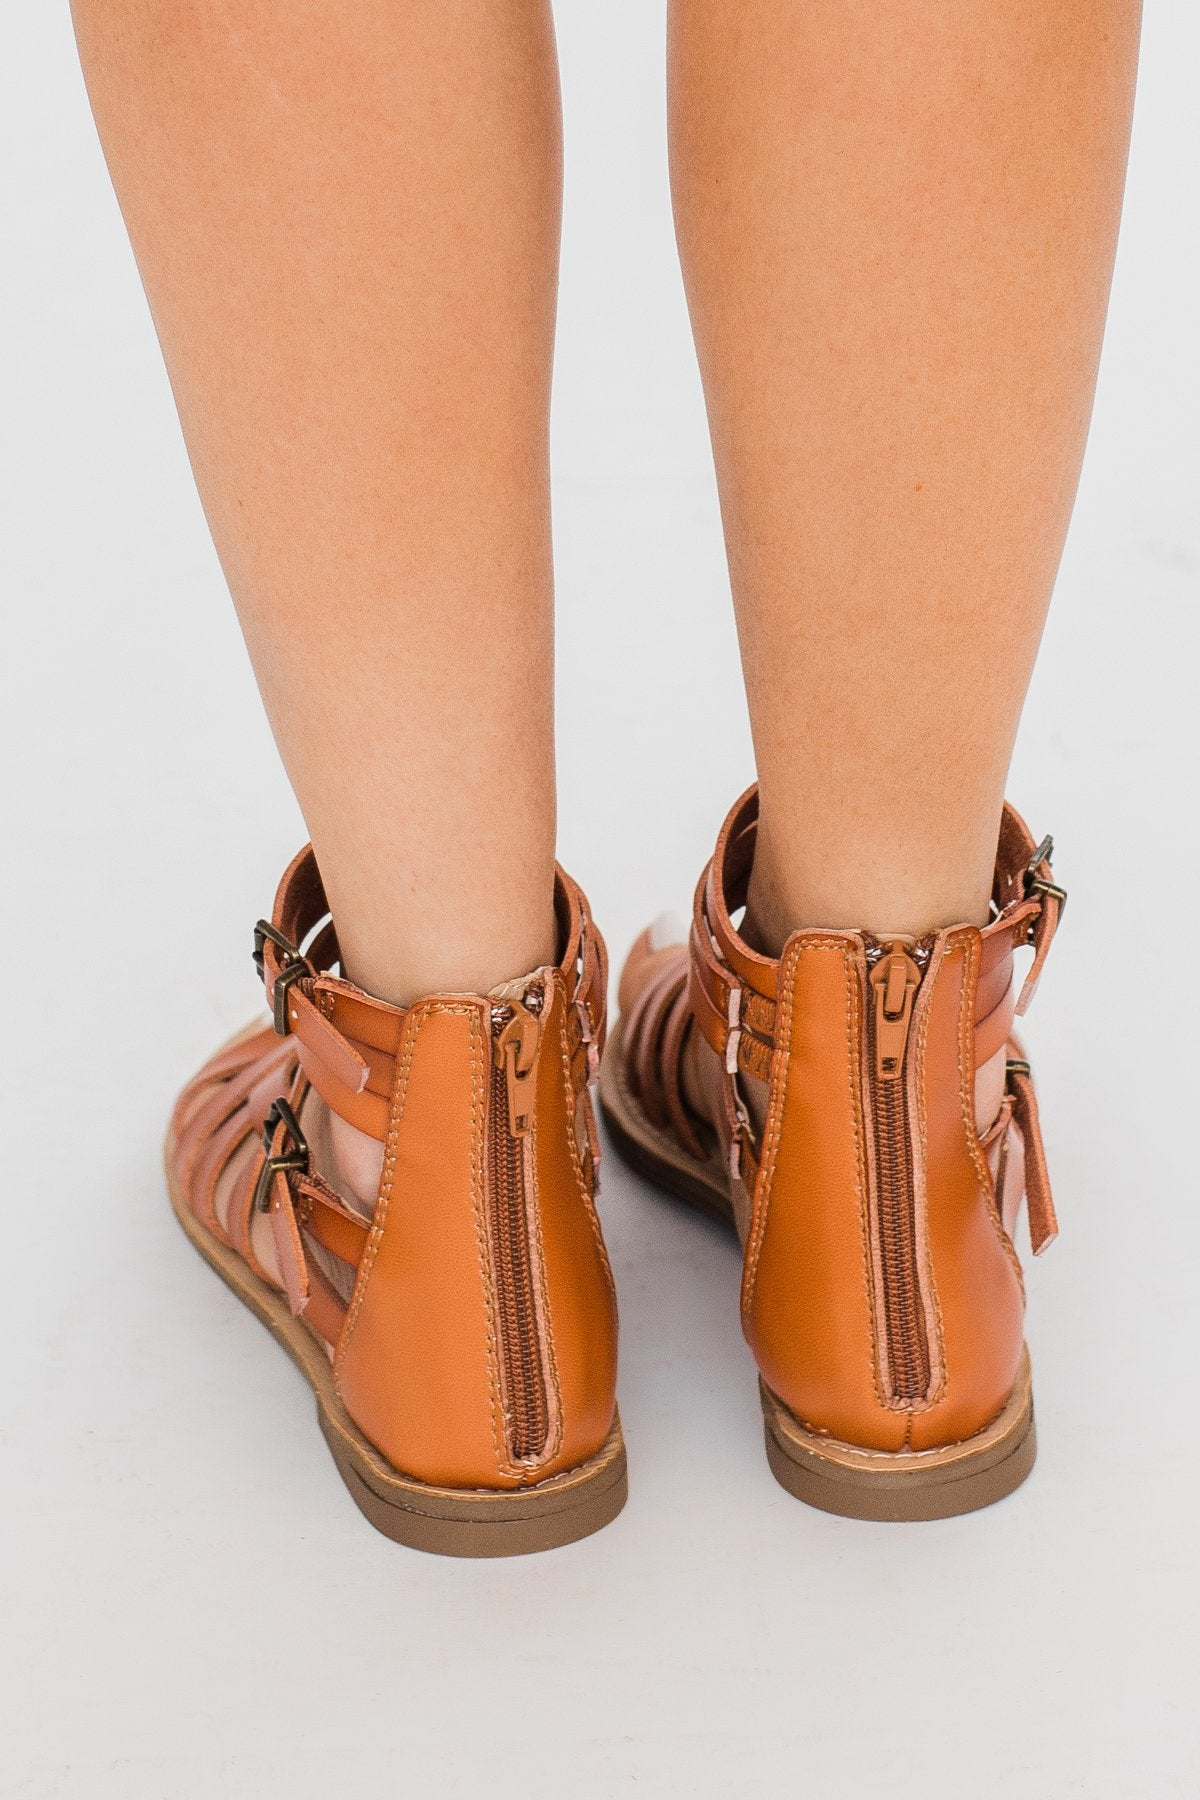 Sugar Malou Sandals- Cognac